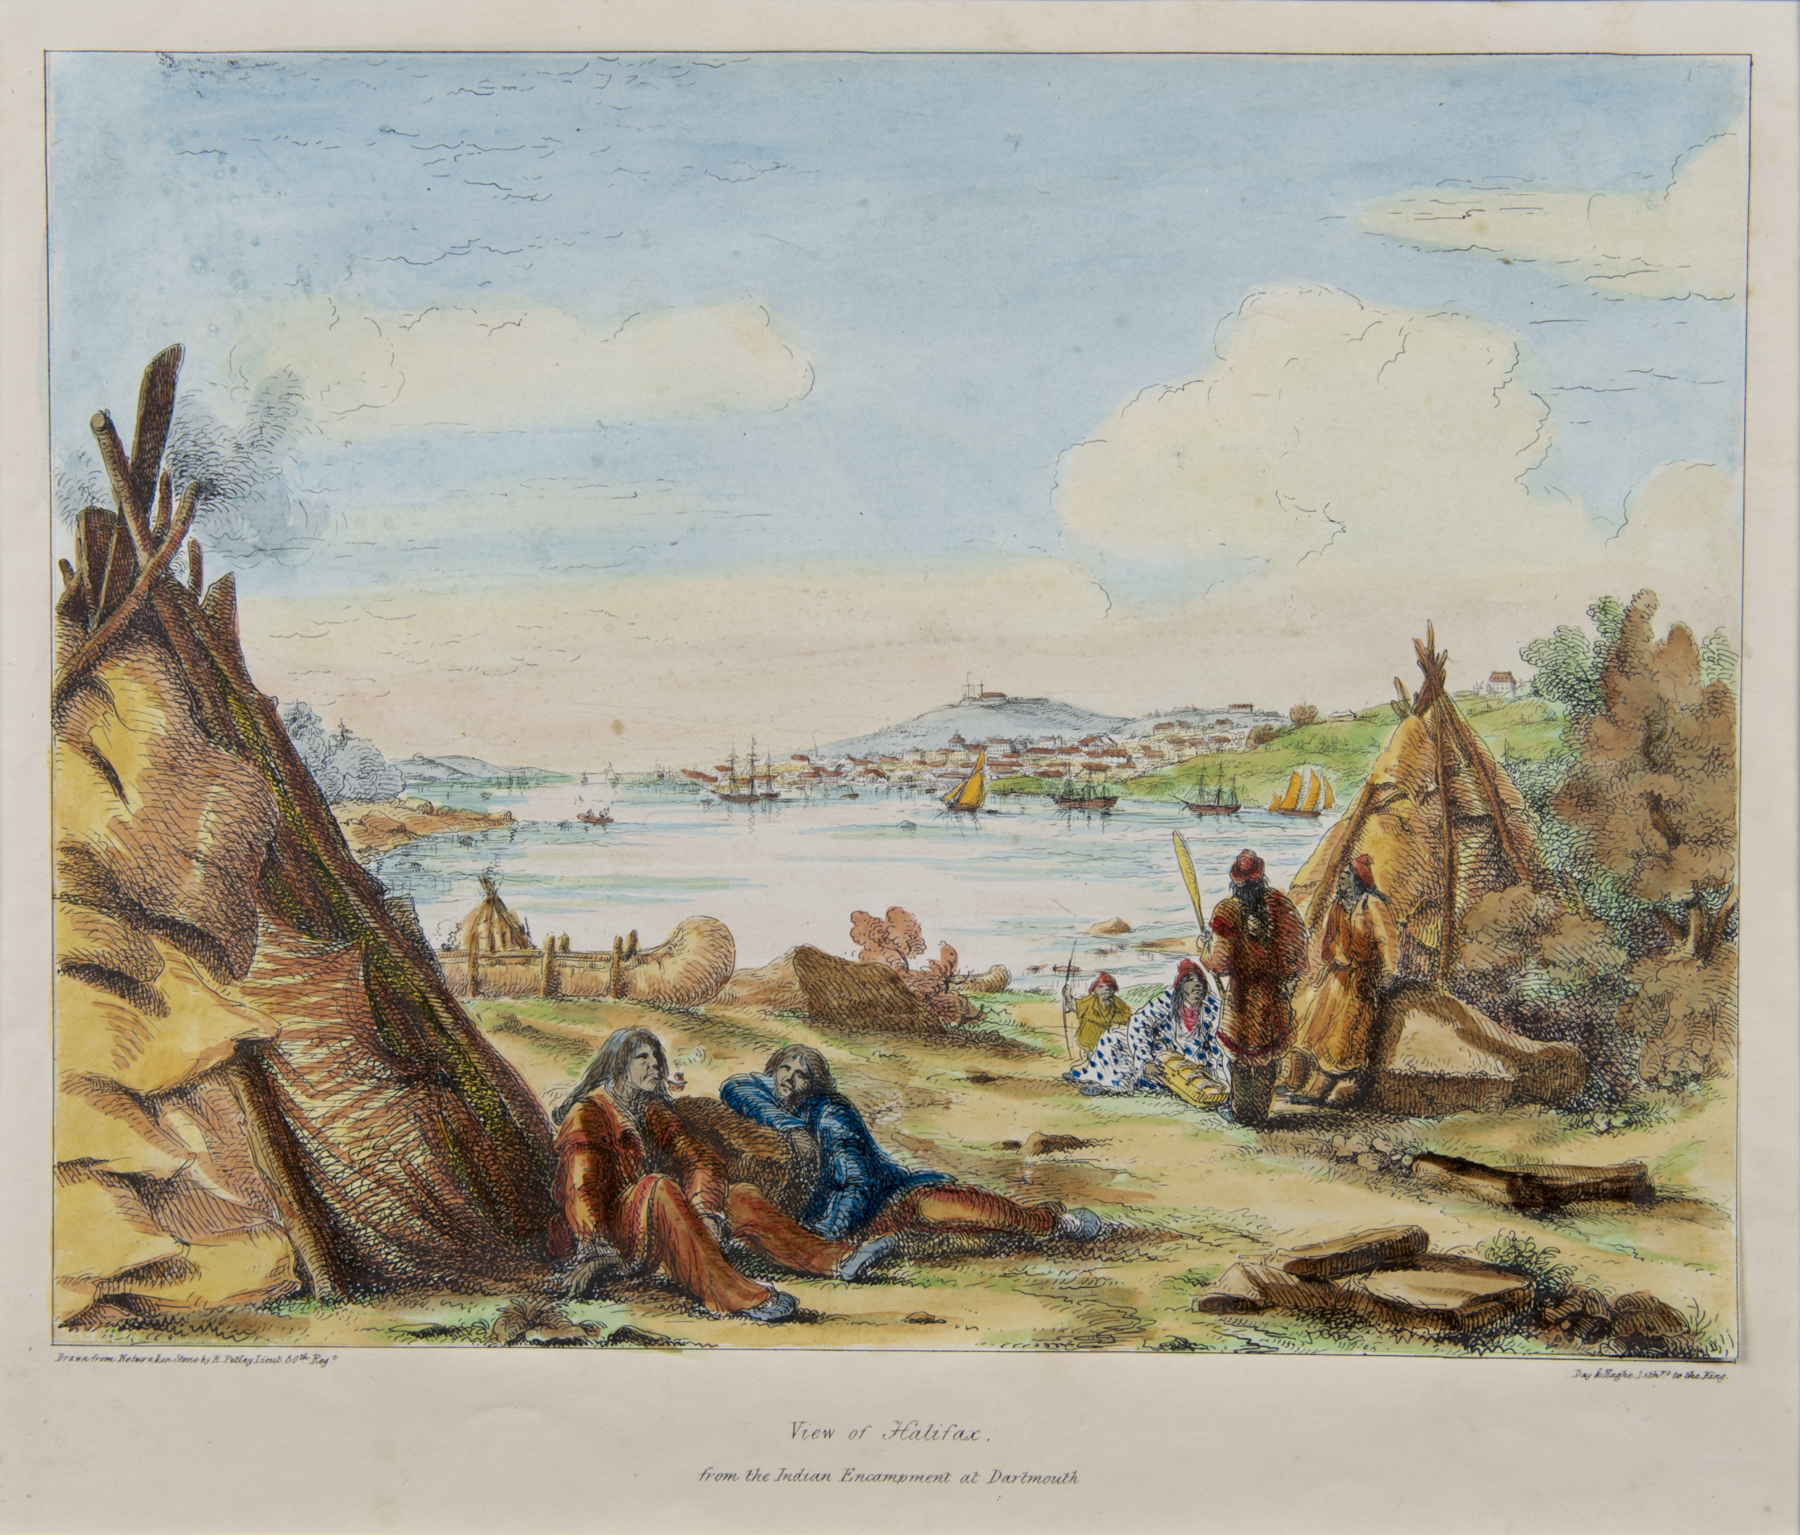 View of Halifax, from the Indian Encampment at Dartmouth, 1837